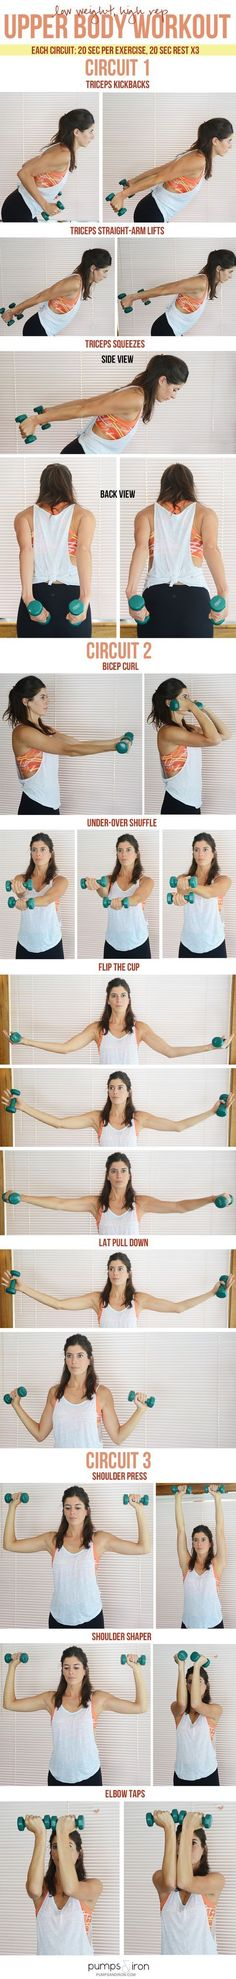 15-Minute Upper Body Workout (low weights, high reps)